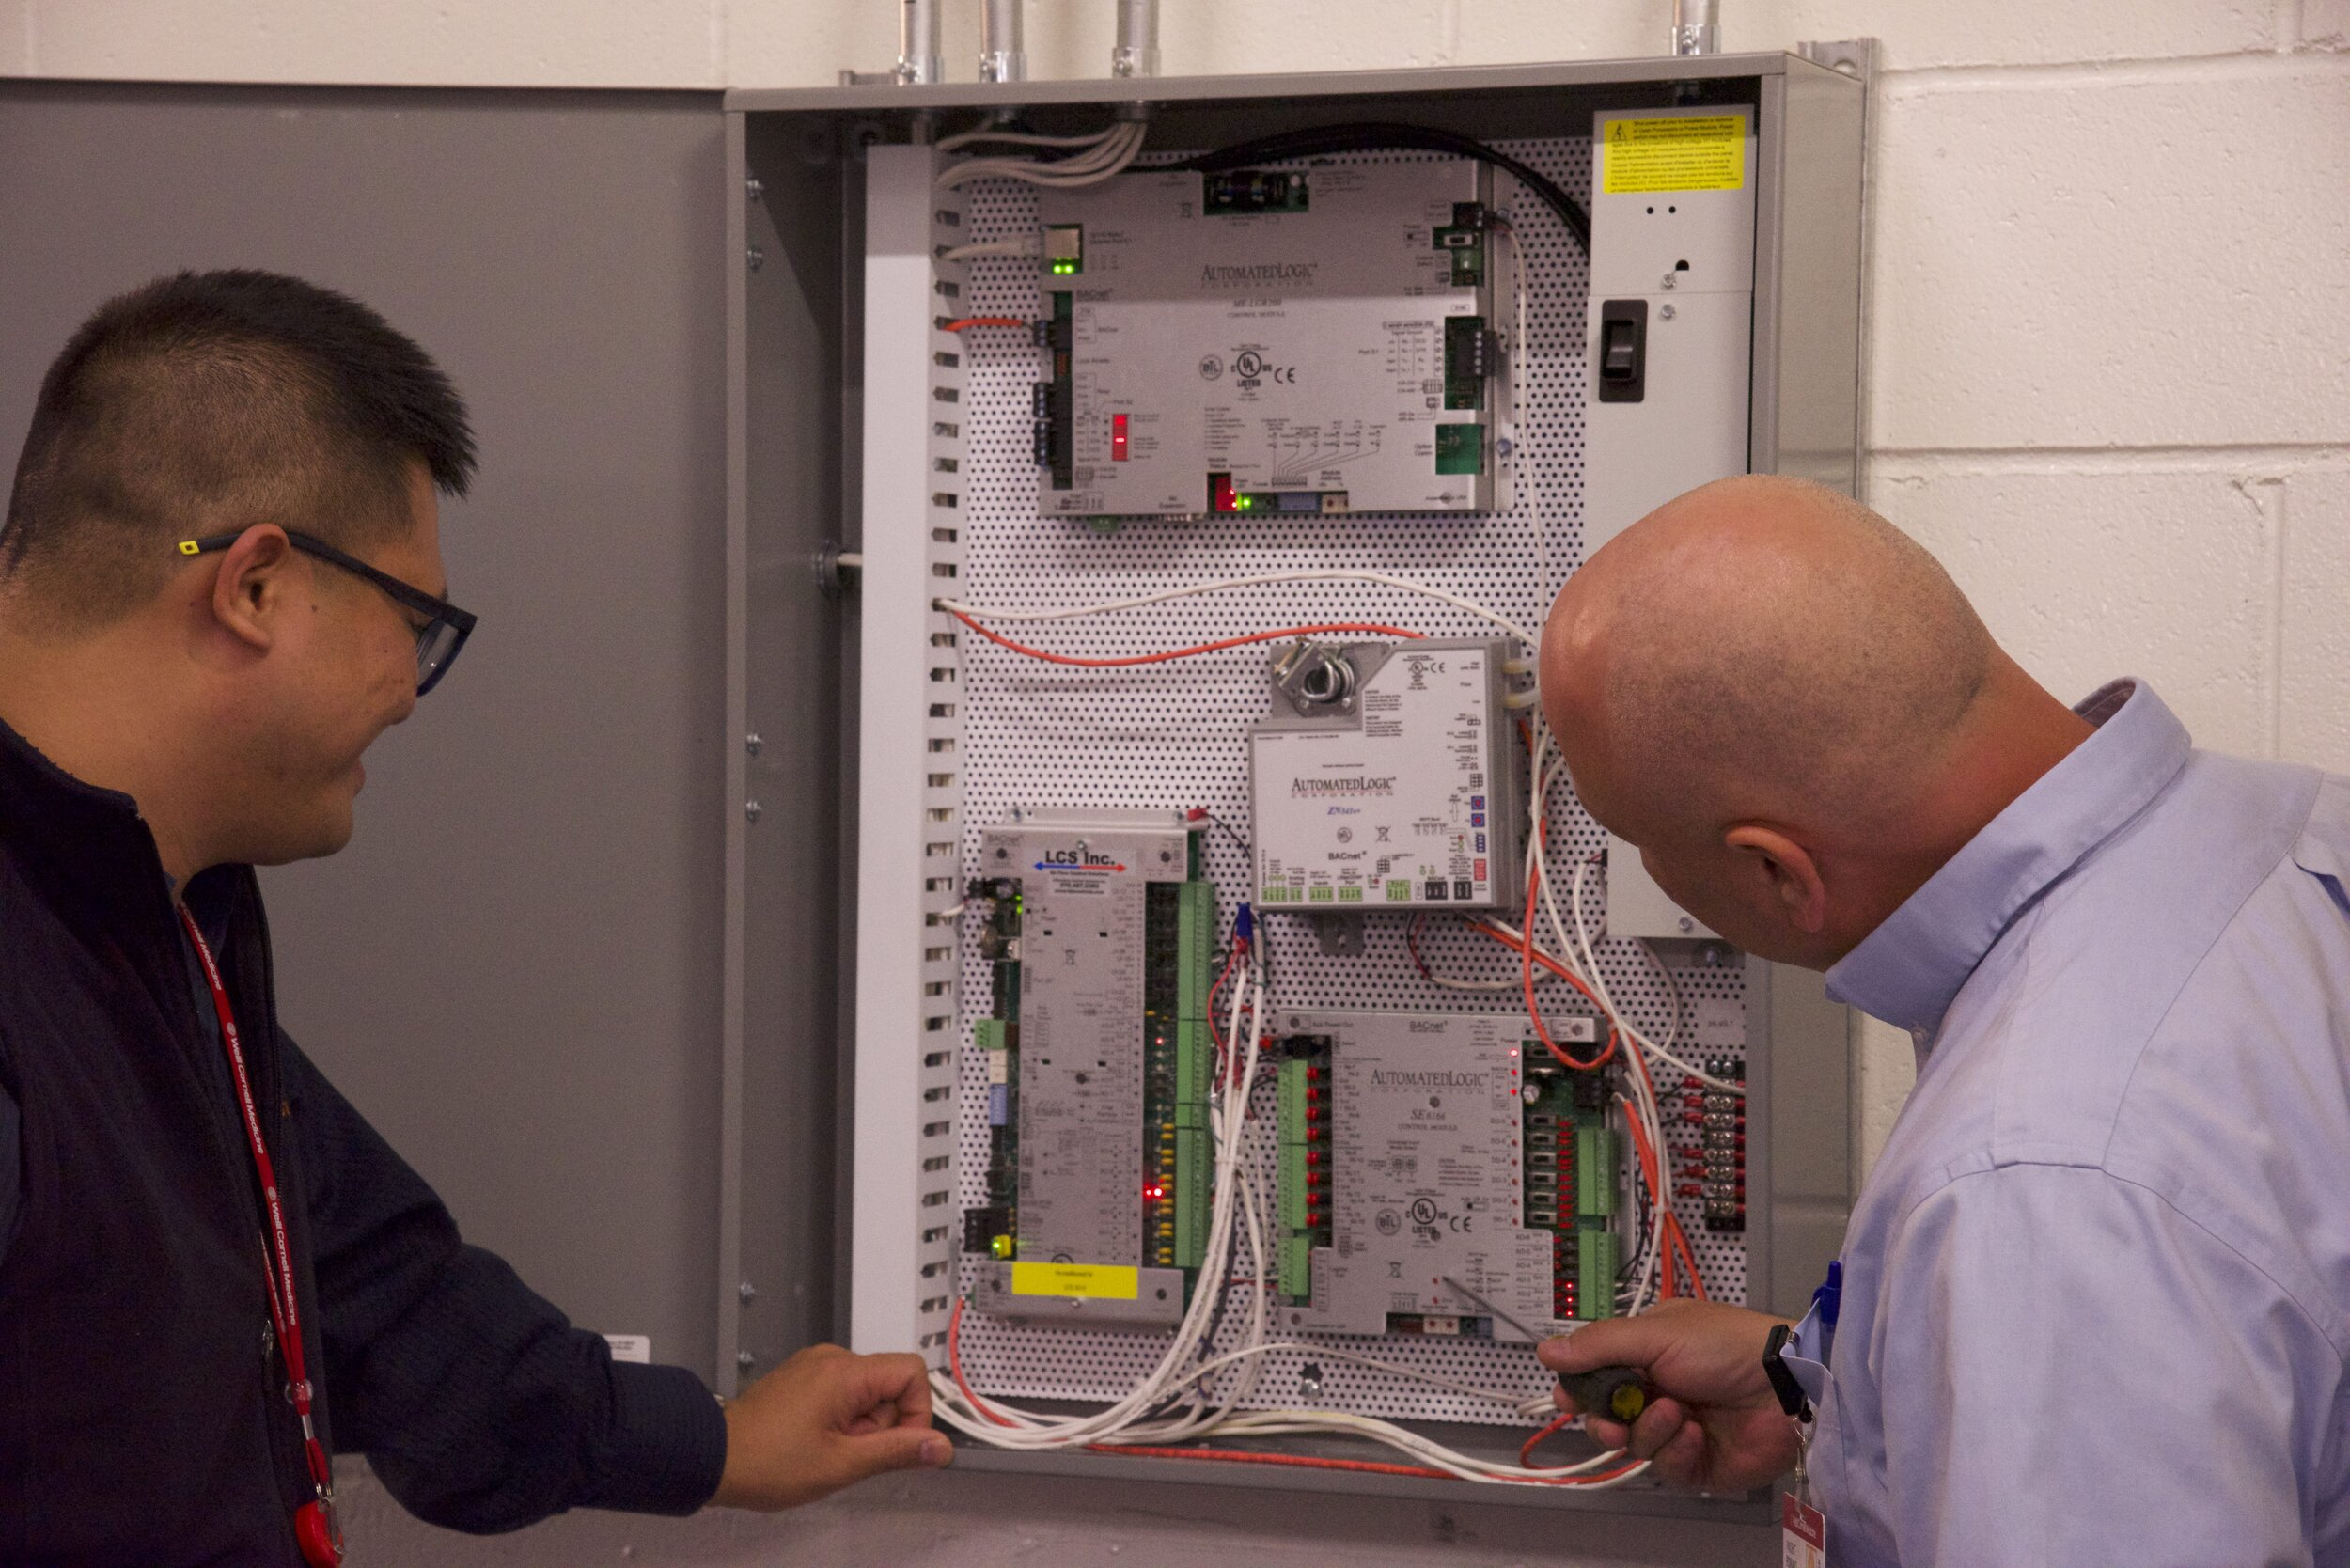 HARRY TEPPER AND VINcent ROMANO LOOKING AT ONE OF THE SYSTEMS IN THE LEARNING LAB.